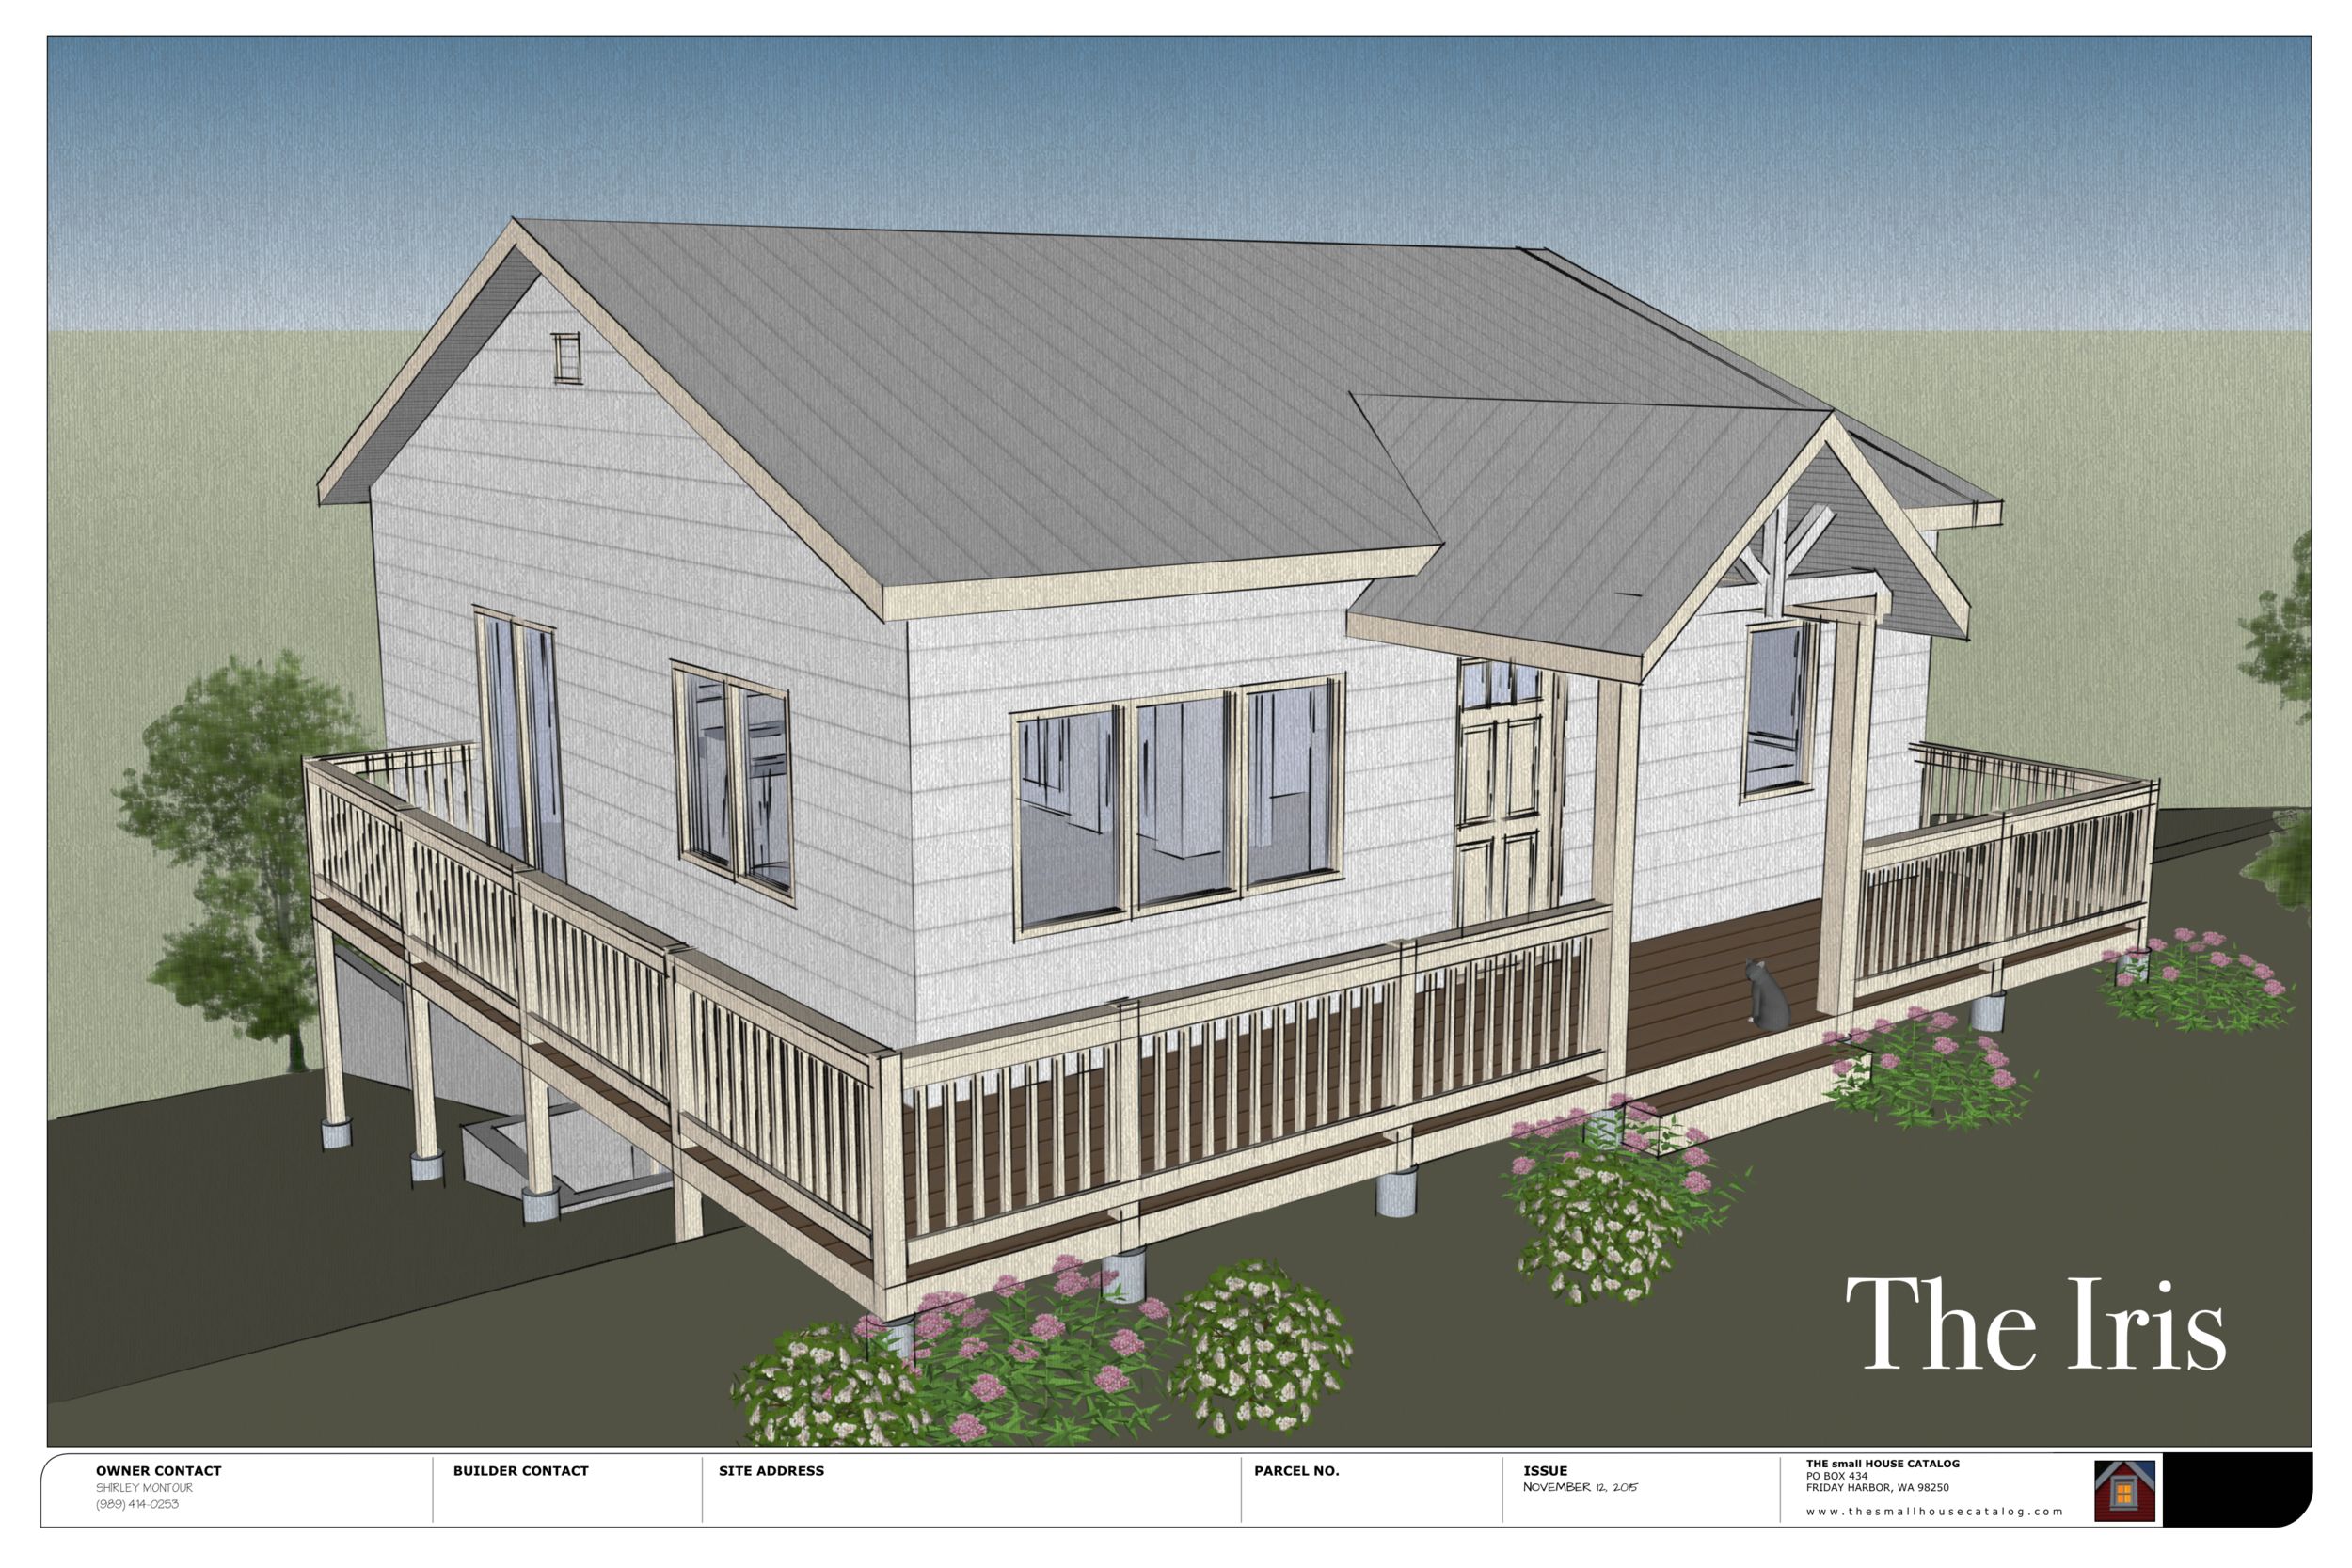 The Iris is a client-based plan designed to build an ADA approved single floor house with a furnished basement. Plan is offered as a free download.